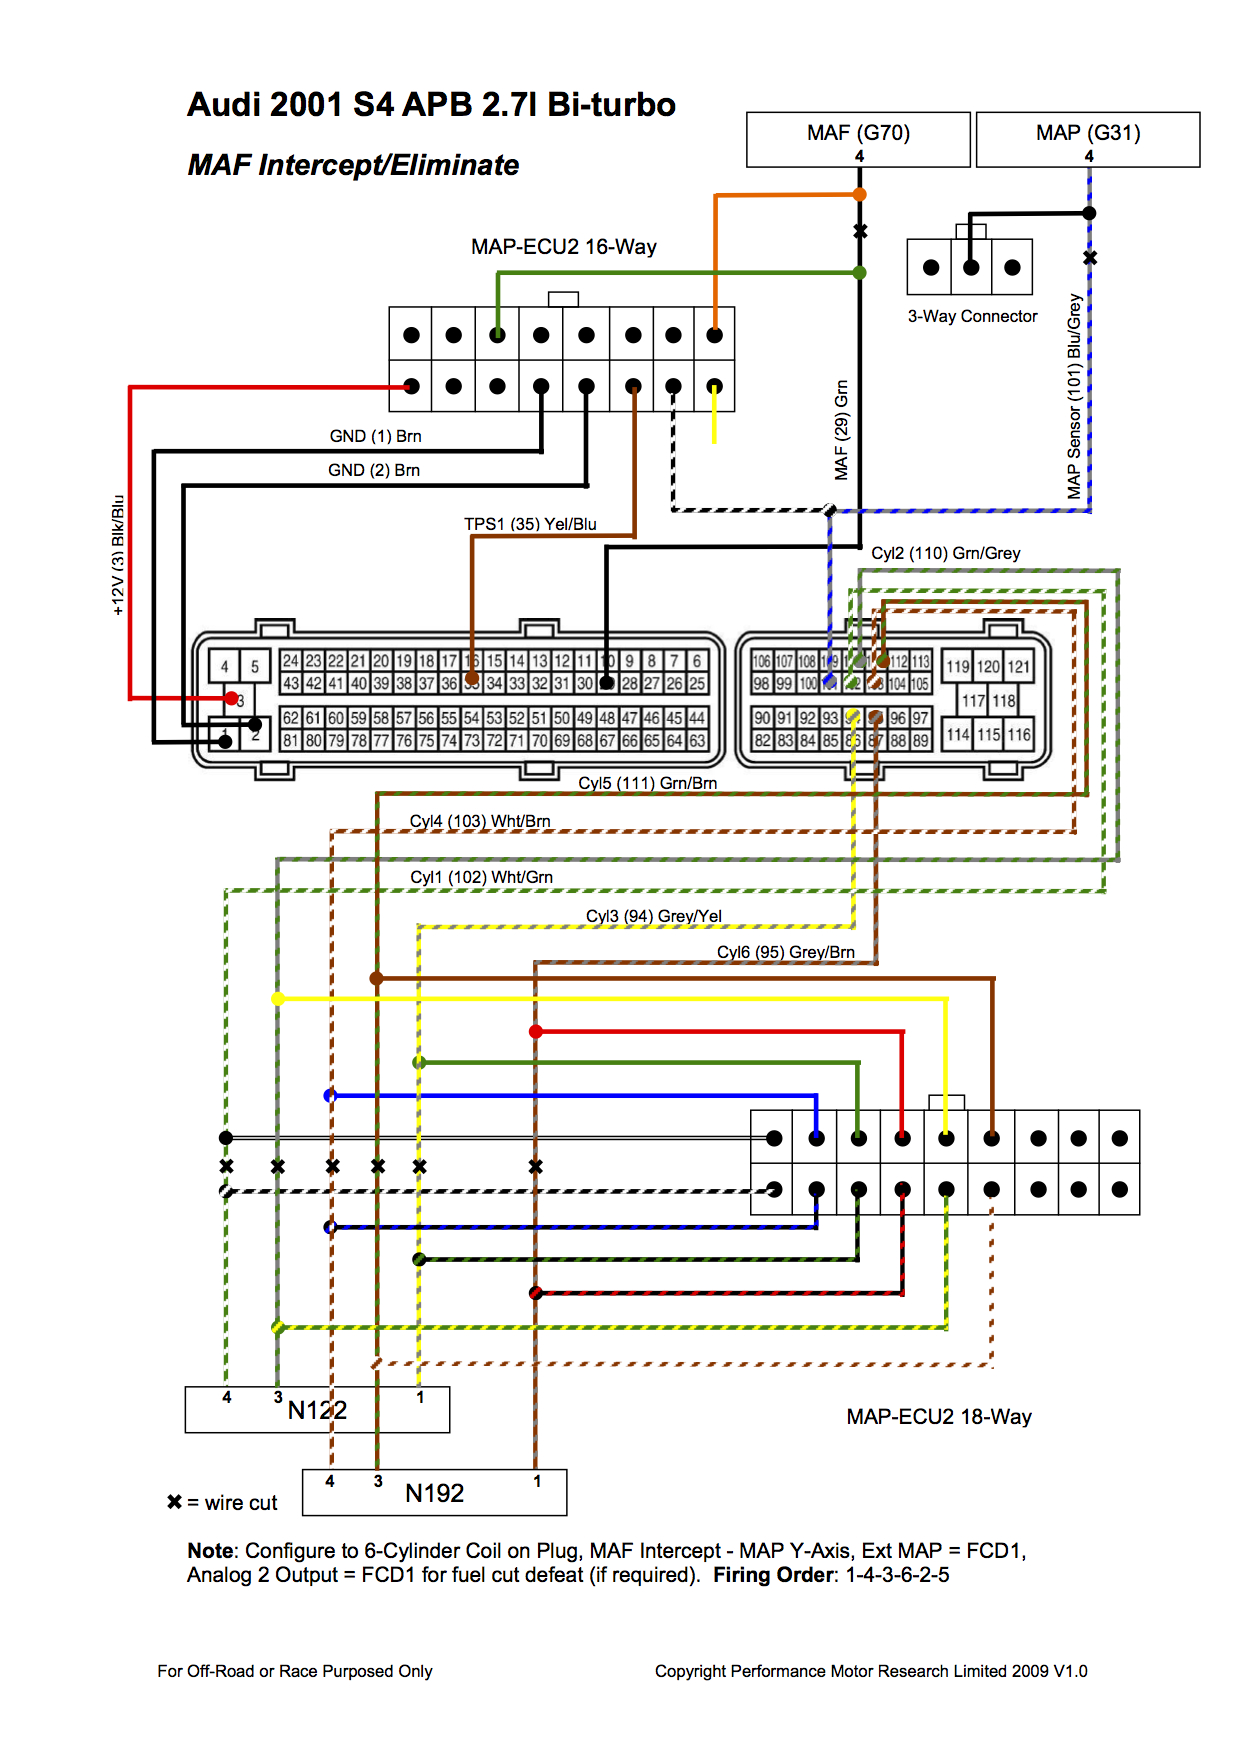 Ecm Wiring Diagram 2006 Touareg Diagrams Best Chevy Impala M43 Similiar Bmw I M Engine Keywords Cat 3126